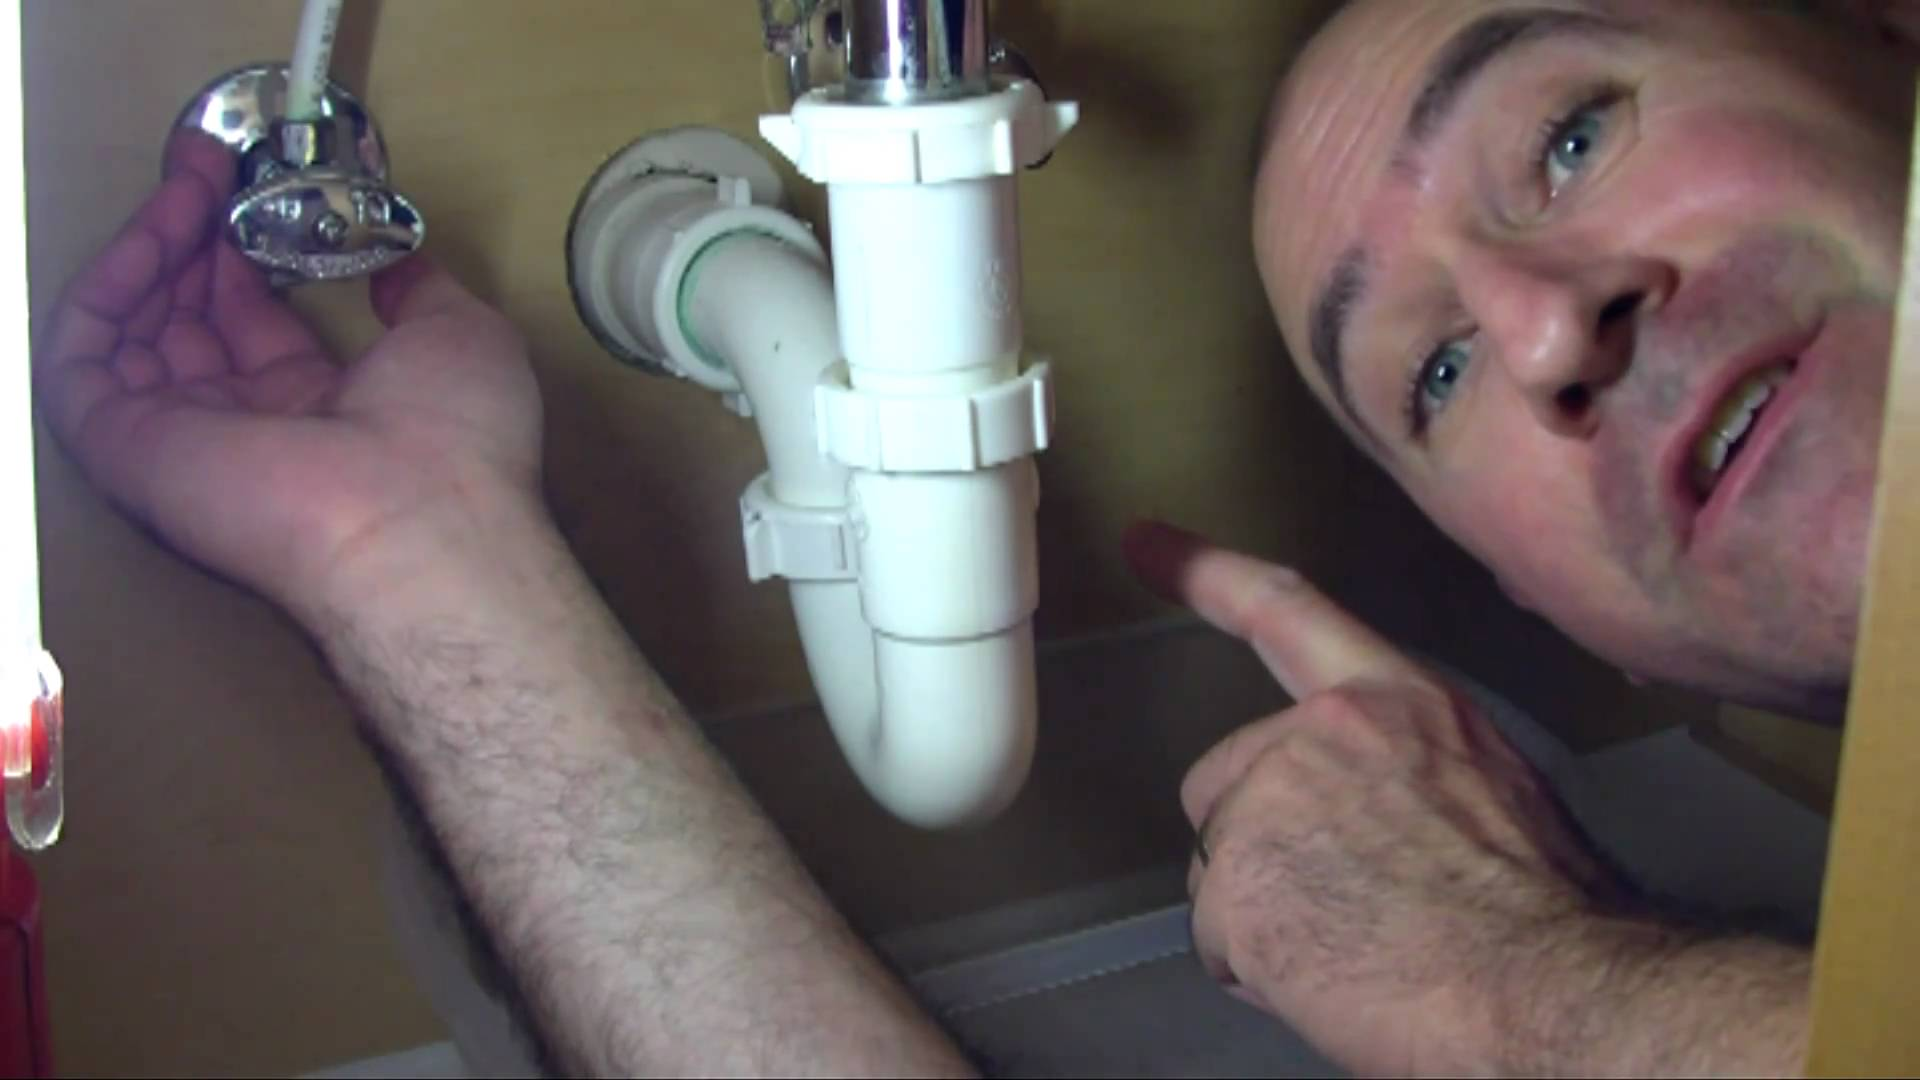 Photography Gallery Sites How to Fix a Slow Draining Bathroom Sink ProMaster Cincinnati